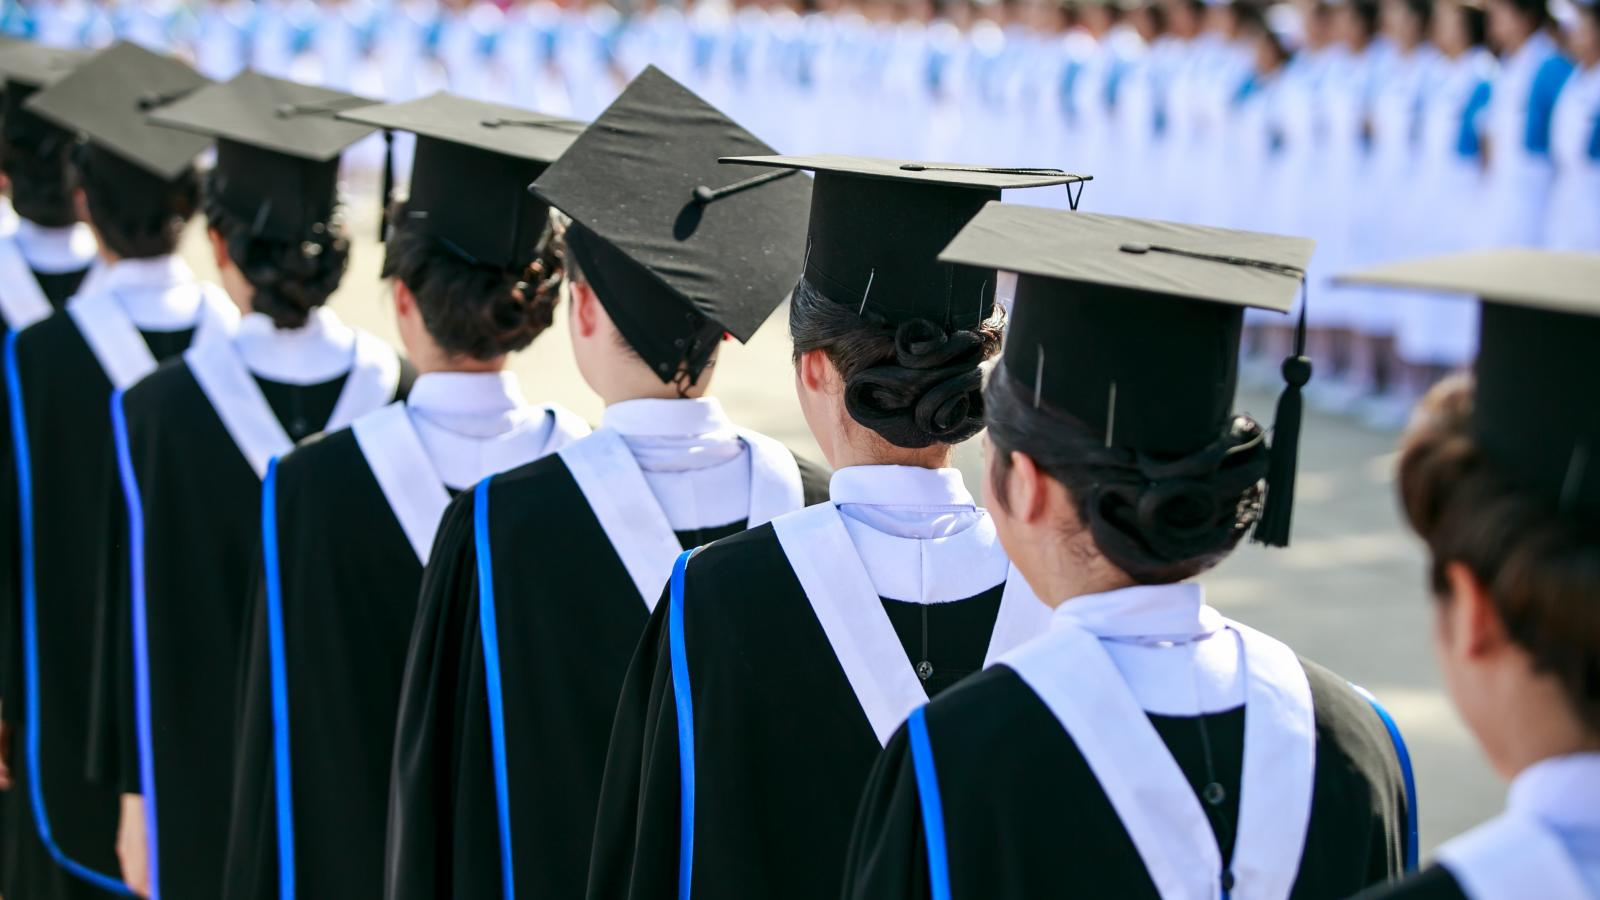 Line of graduates in caps and gowns